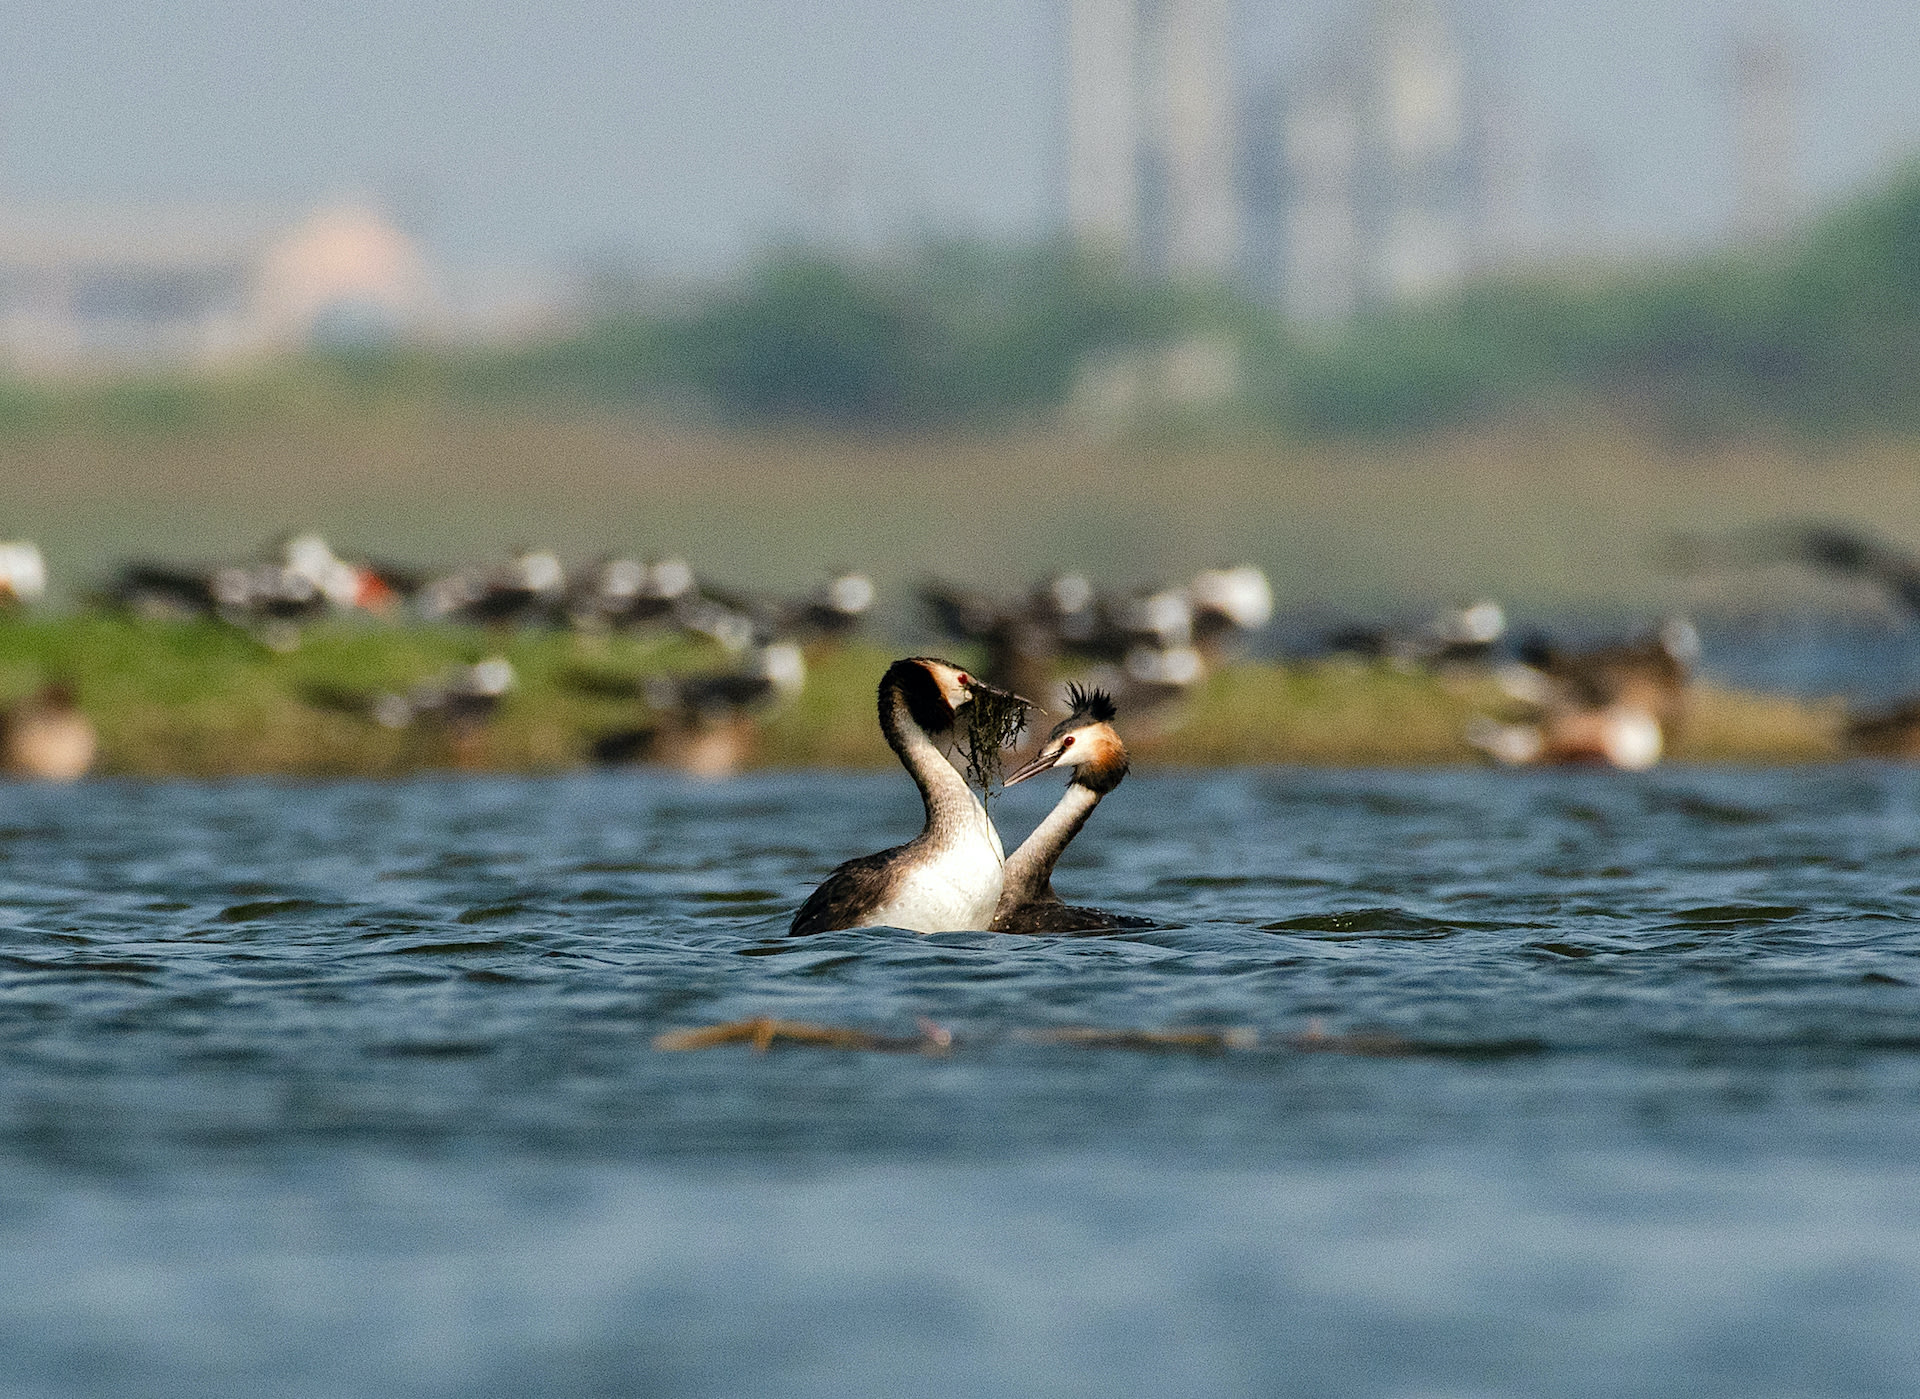 gujarat-jamnagar-great-crested-grebe-courtship-dance-close-to-each-other